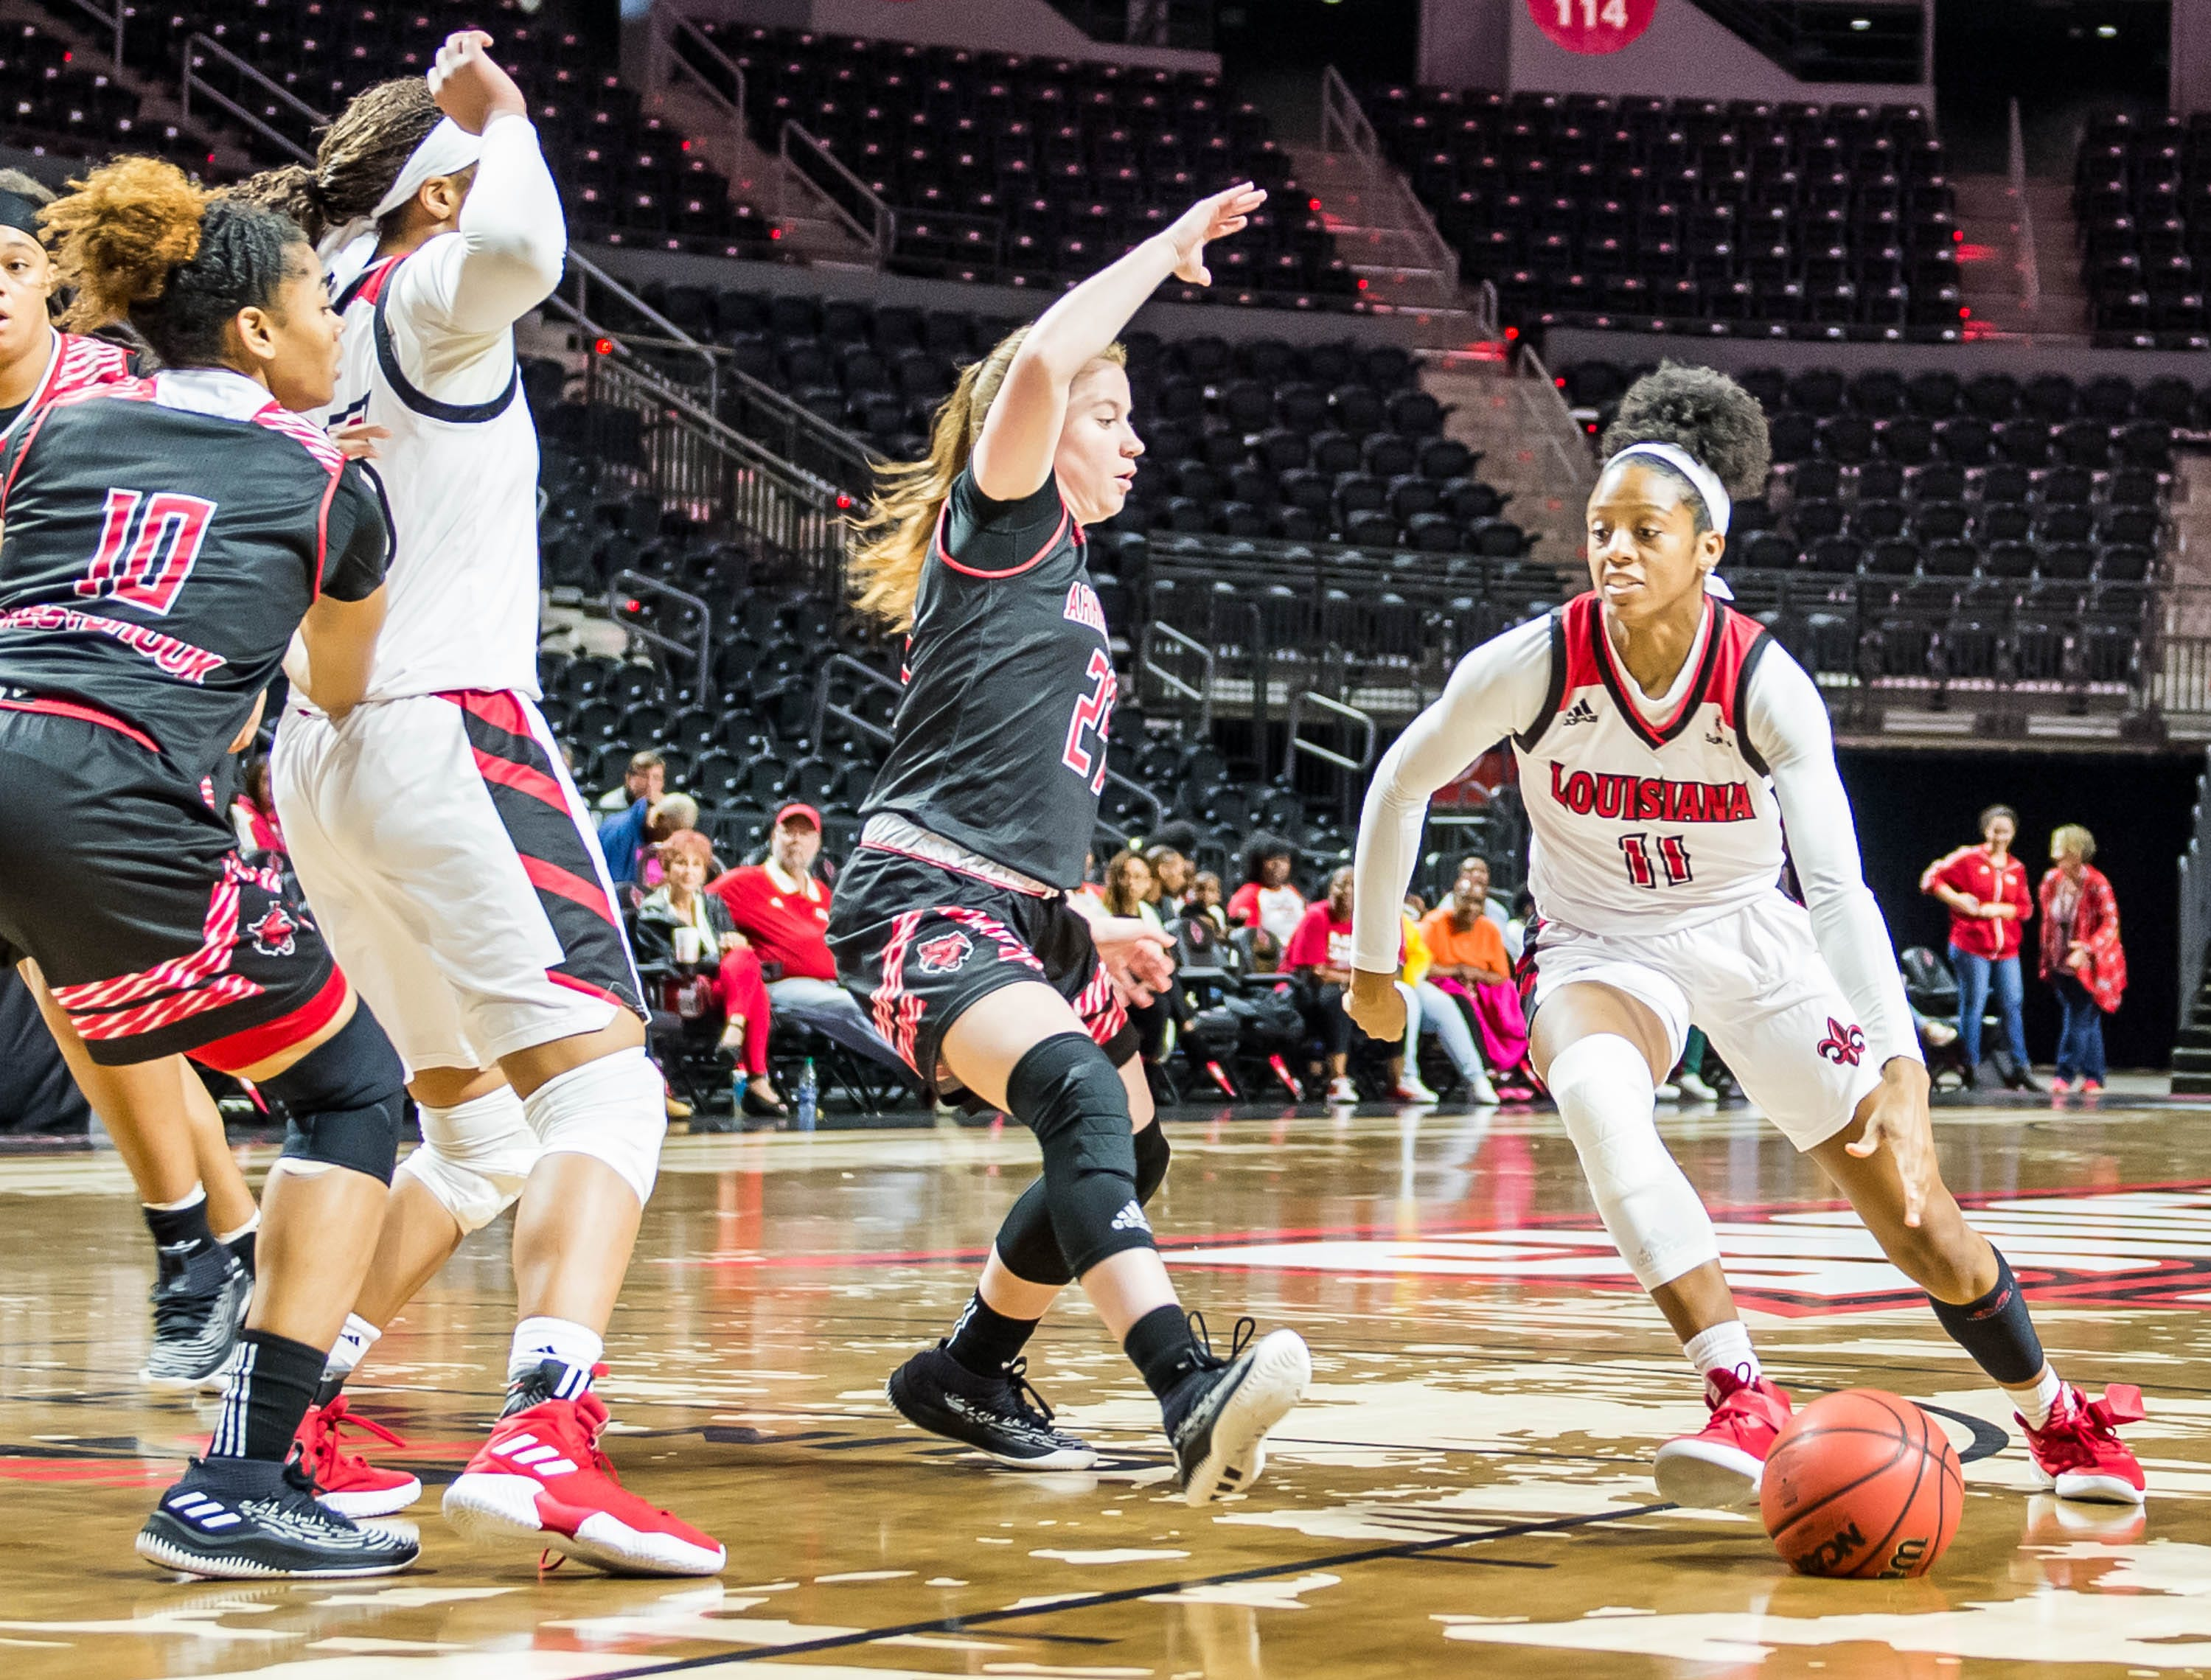 Cajuns Skyler Goodwin (11) takes the ball inside the paint as the Cajuns women's basketball team plays the Arkansas State Red Wolves at the Cajundome on Saturday, March 9, 2019.